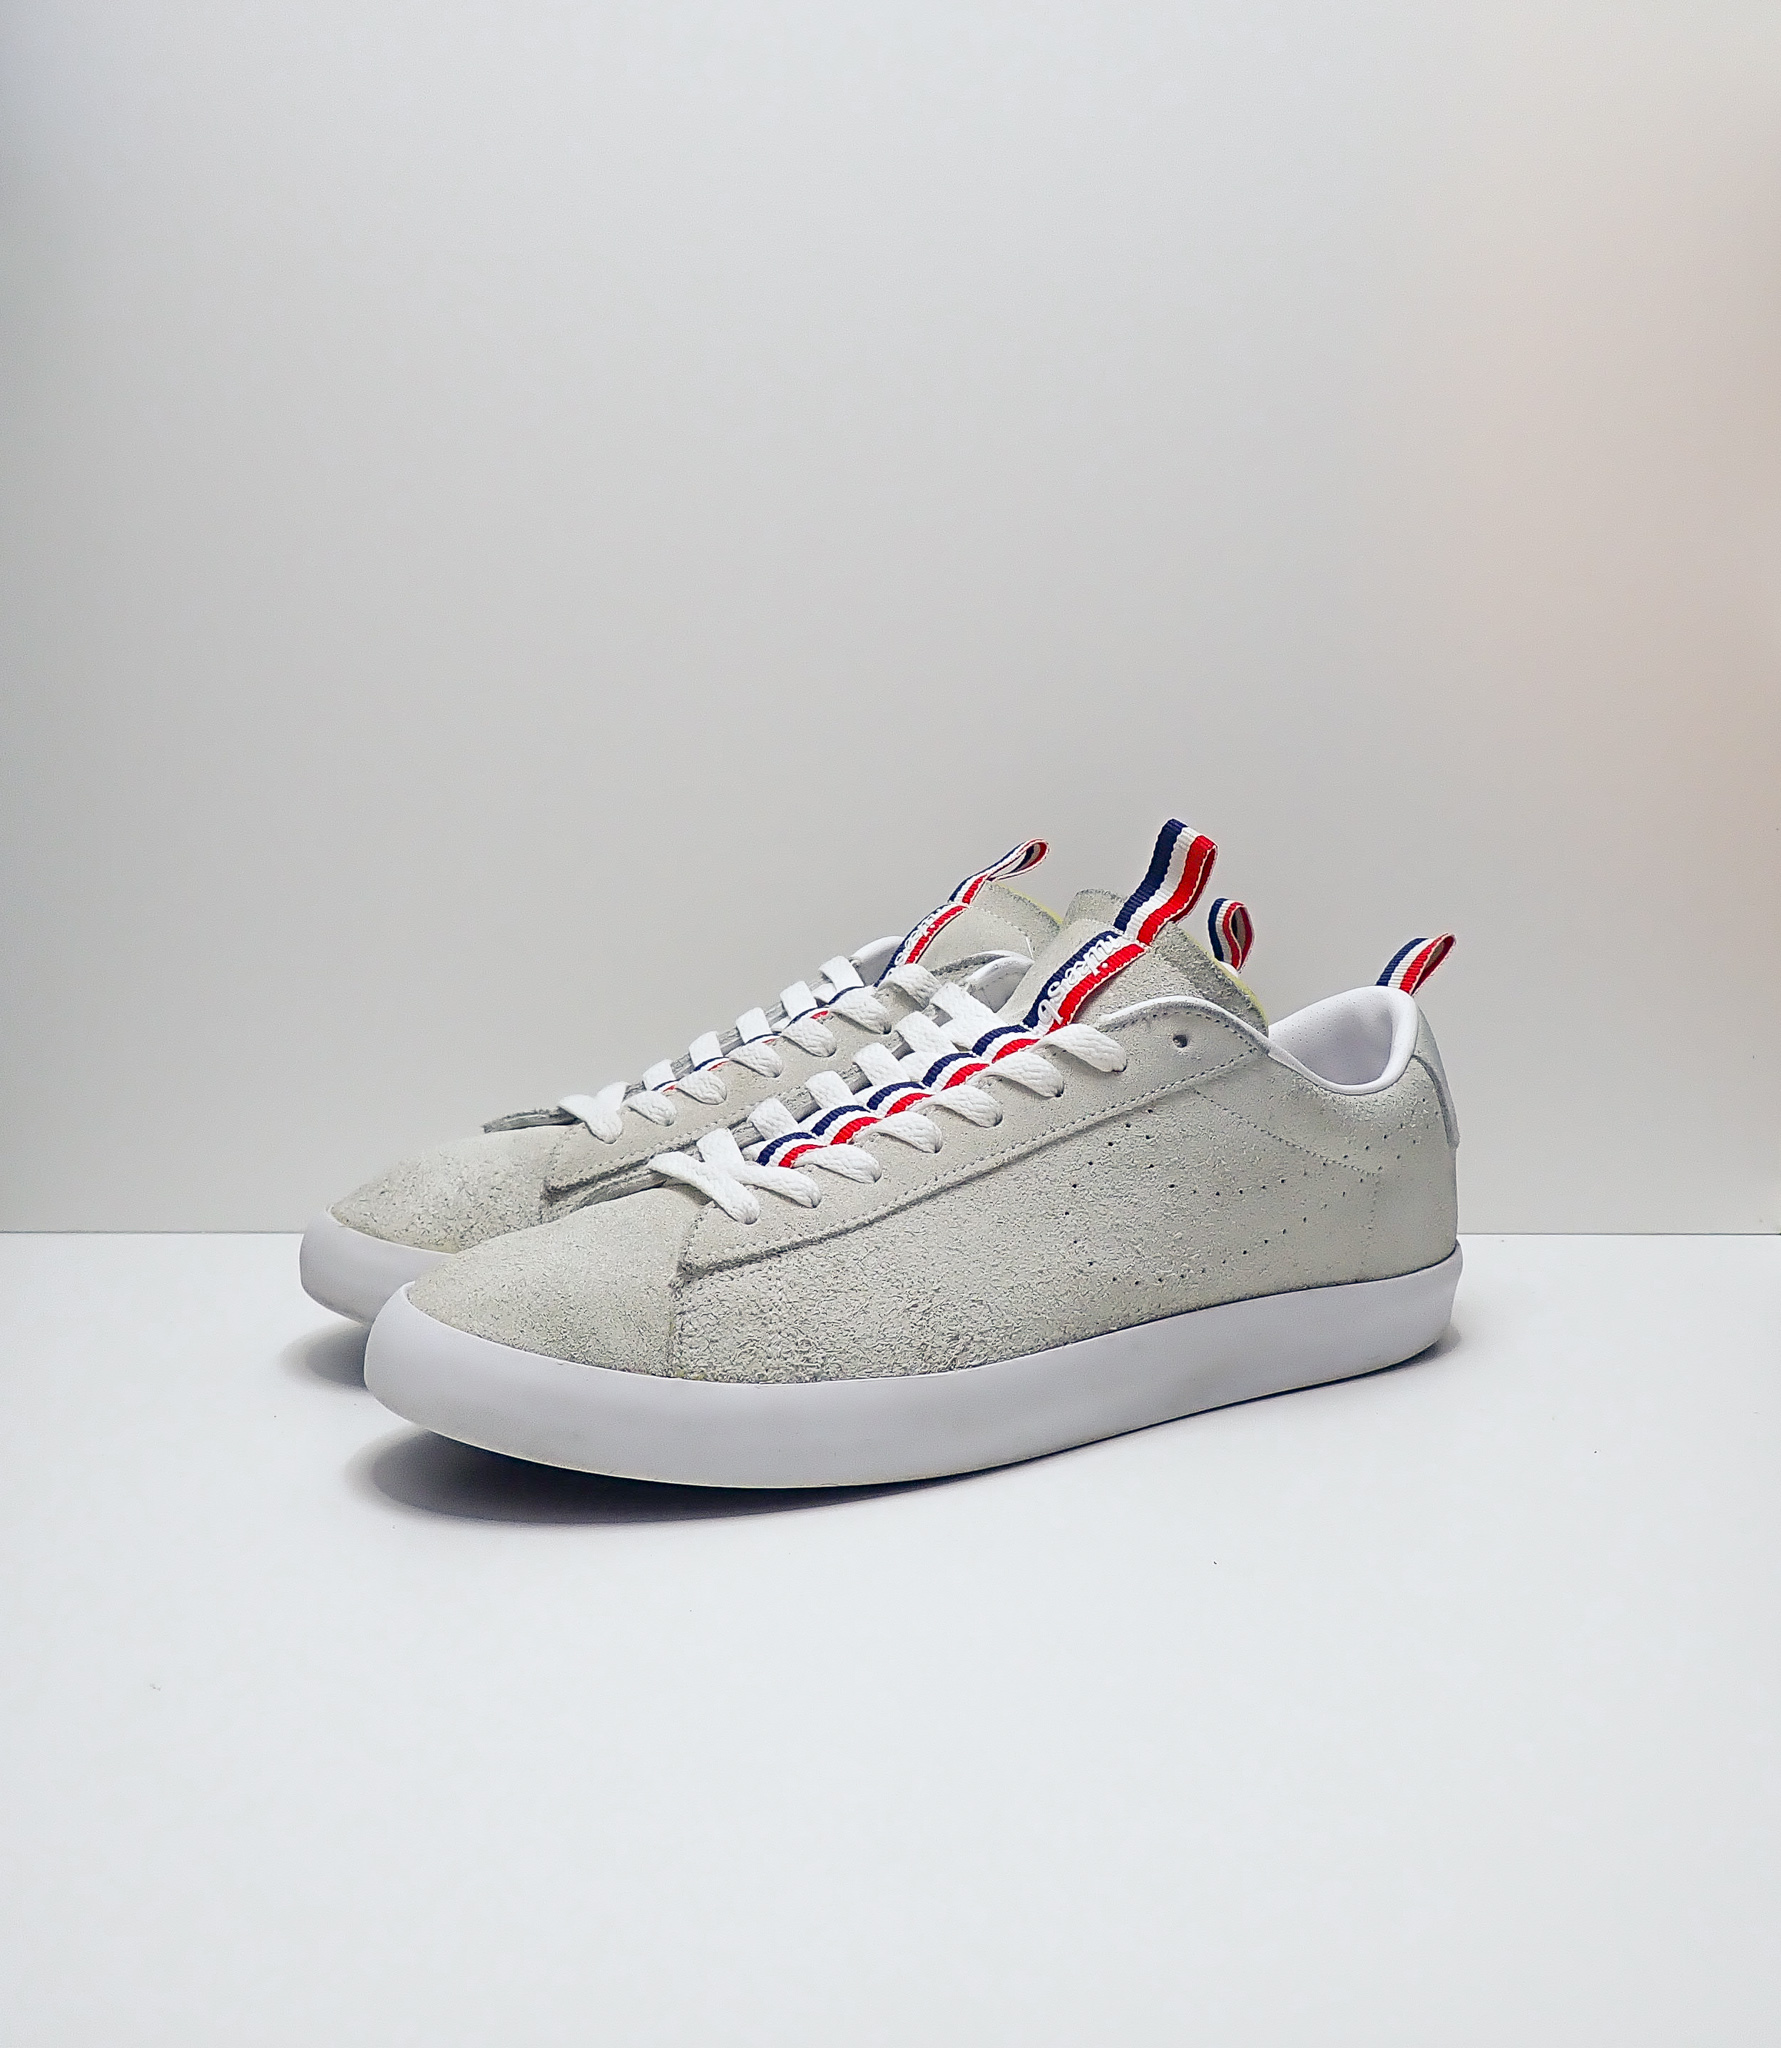 Nike SB Blazer Low Call Me 917 Summit White